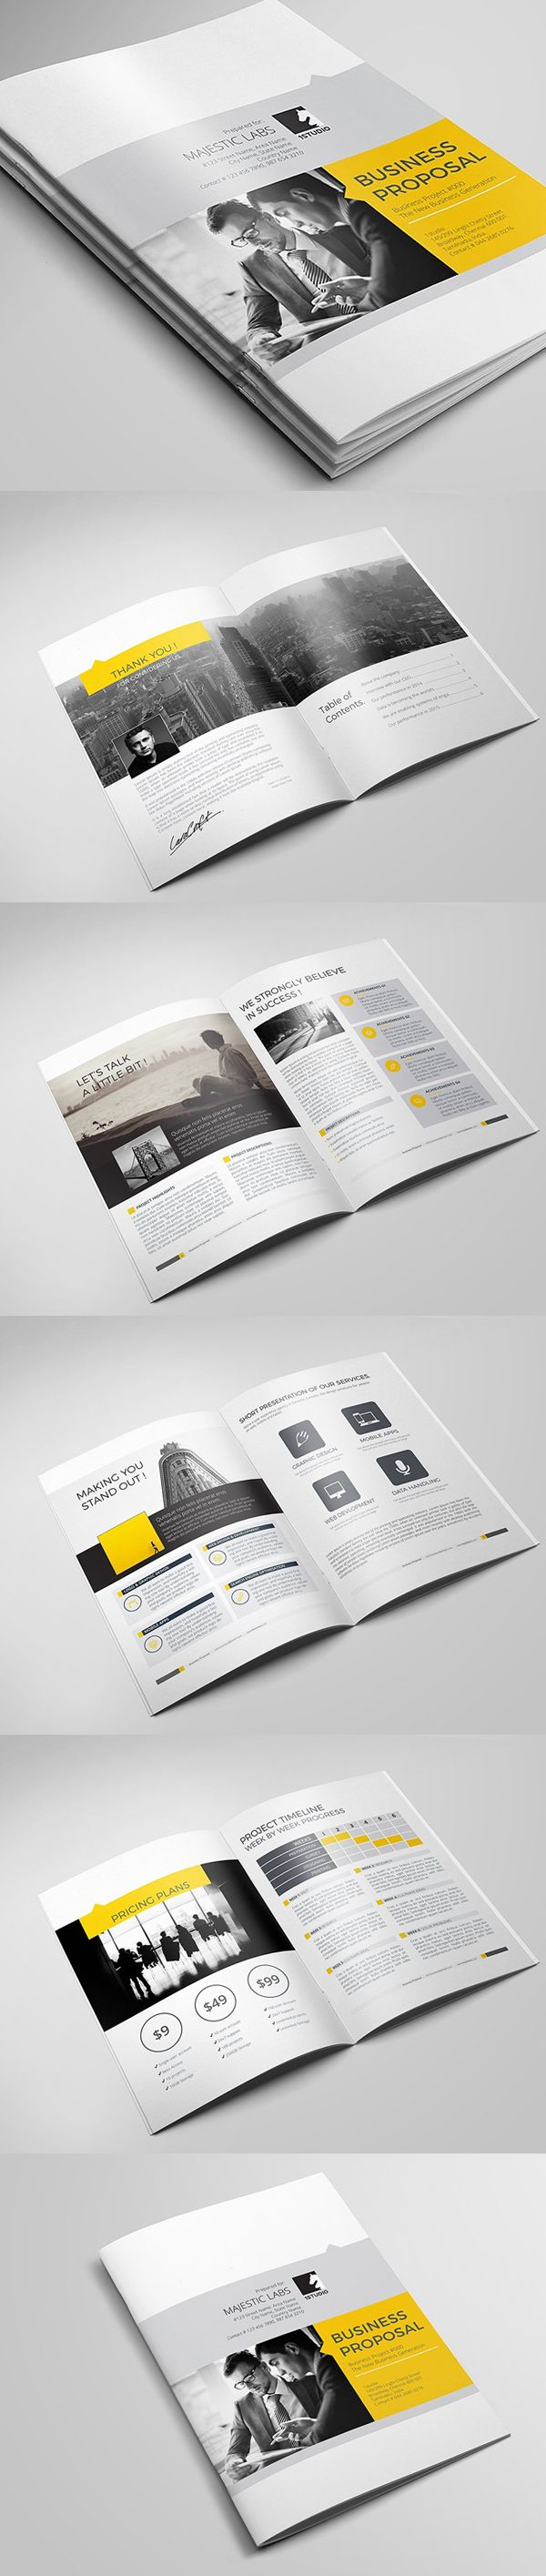 Business Proposal Brochure Template  Design Inspiration